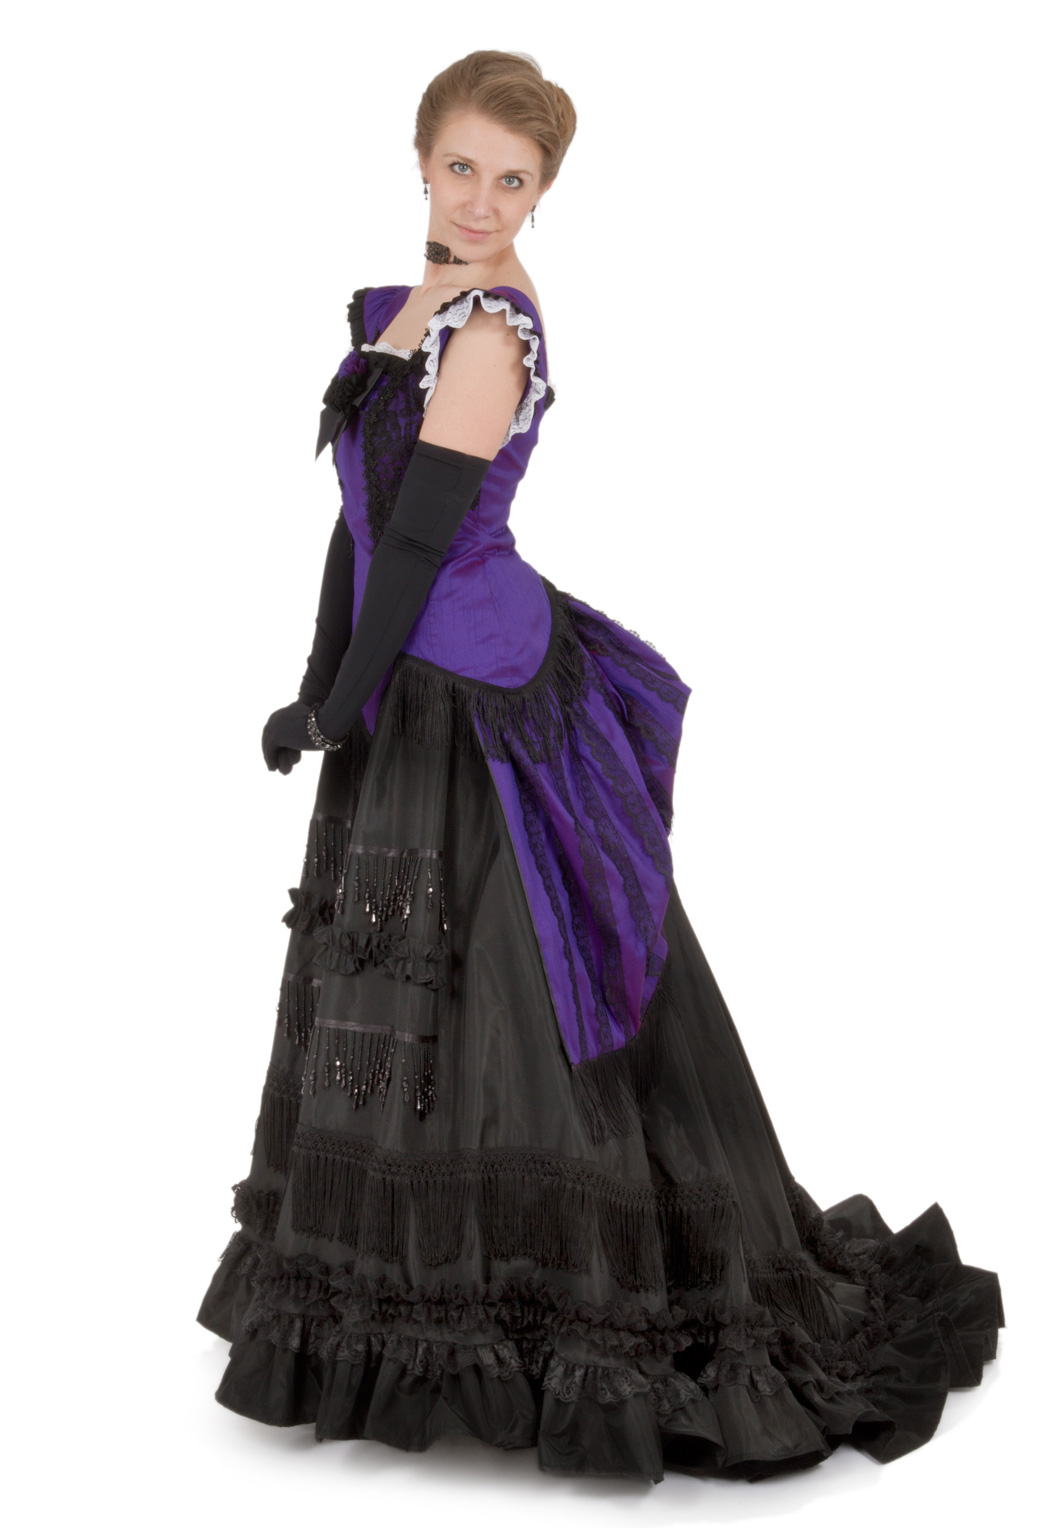 Isadore Victorian Bustle Dress | Recollections